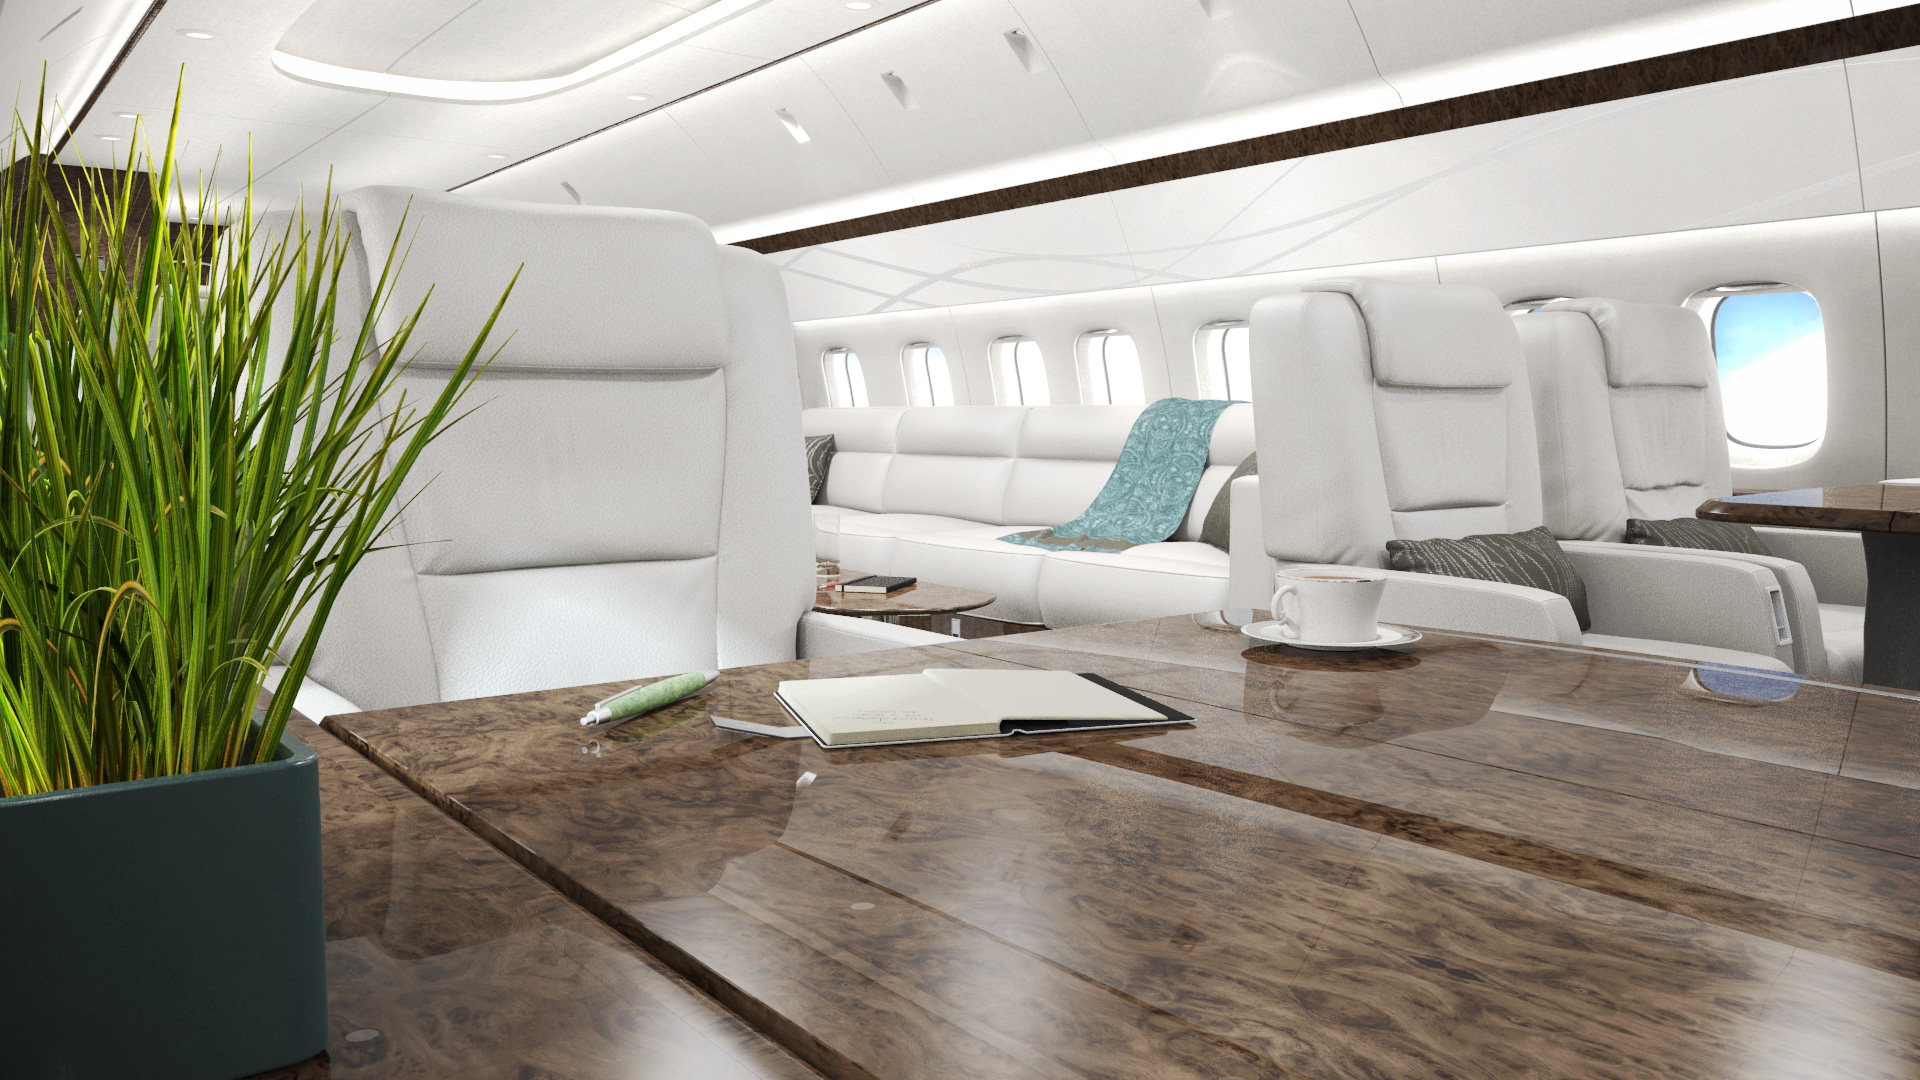 Marketing rendering of the VIP area of a private jet, including bright exterior sunlight entering from the port windows, illuminating a meeting table and sofa.